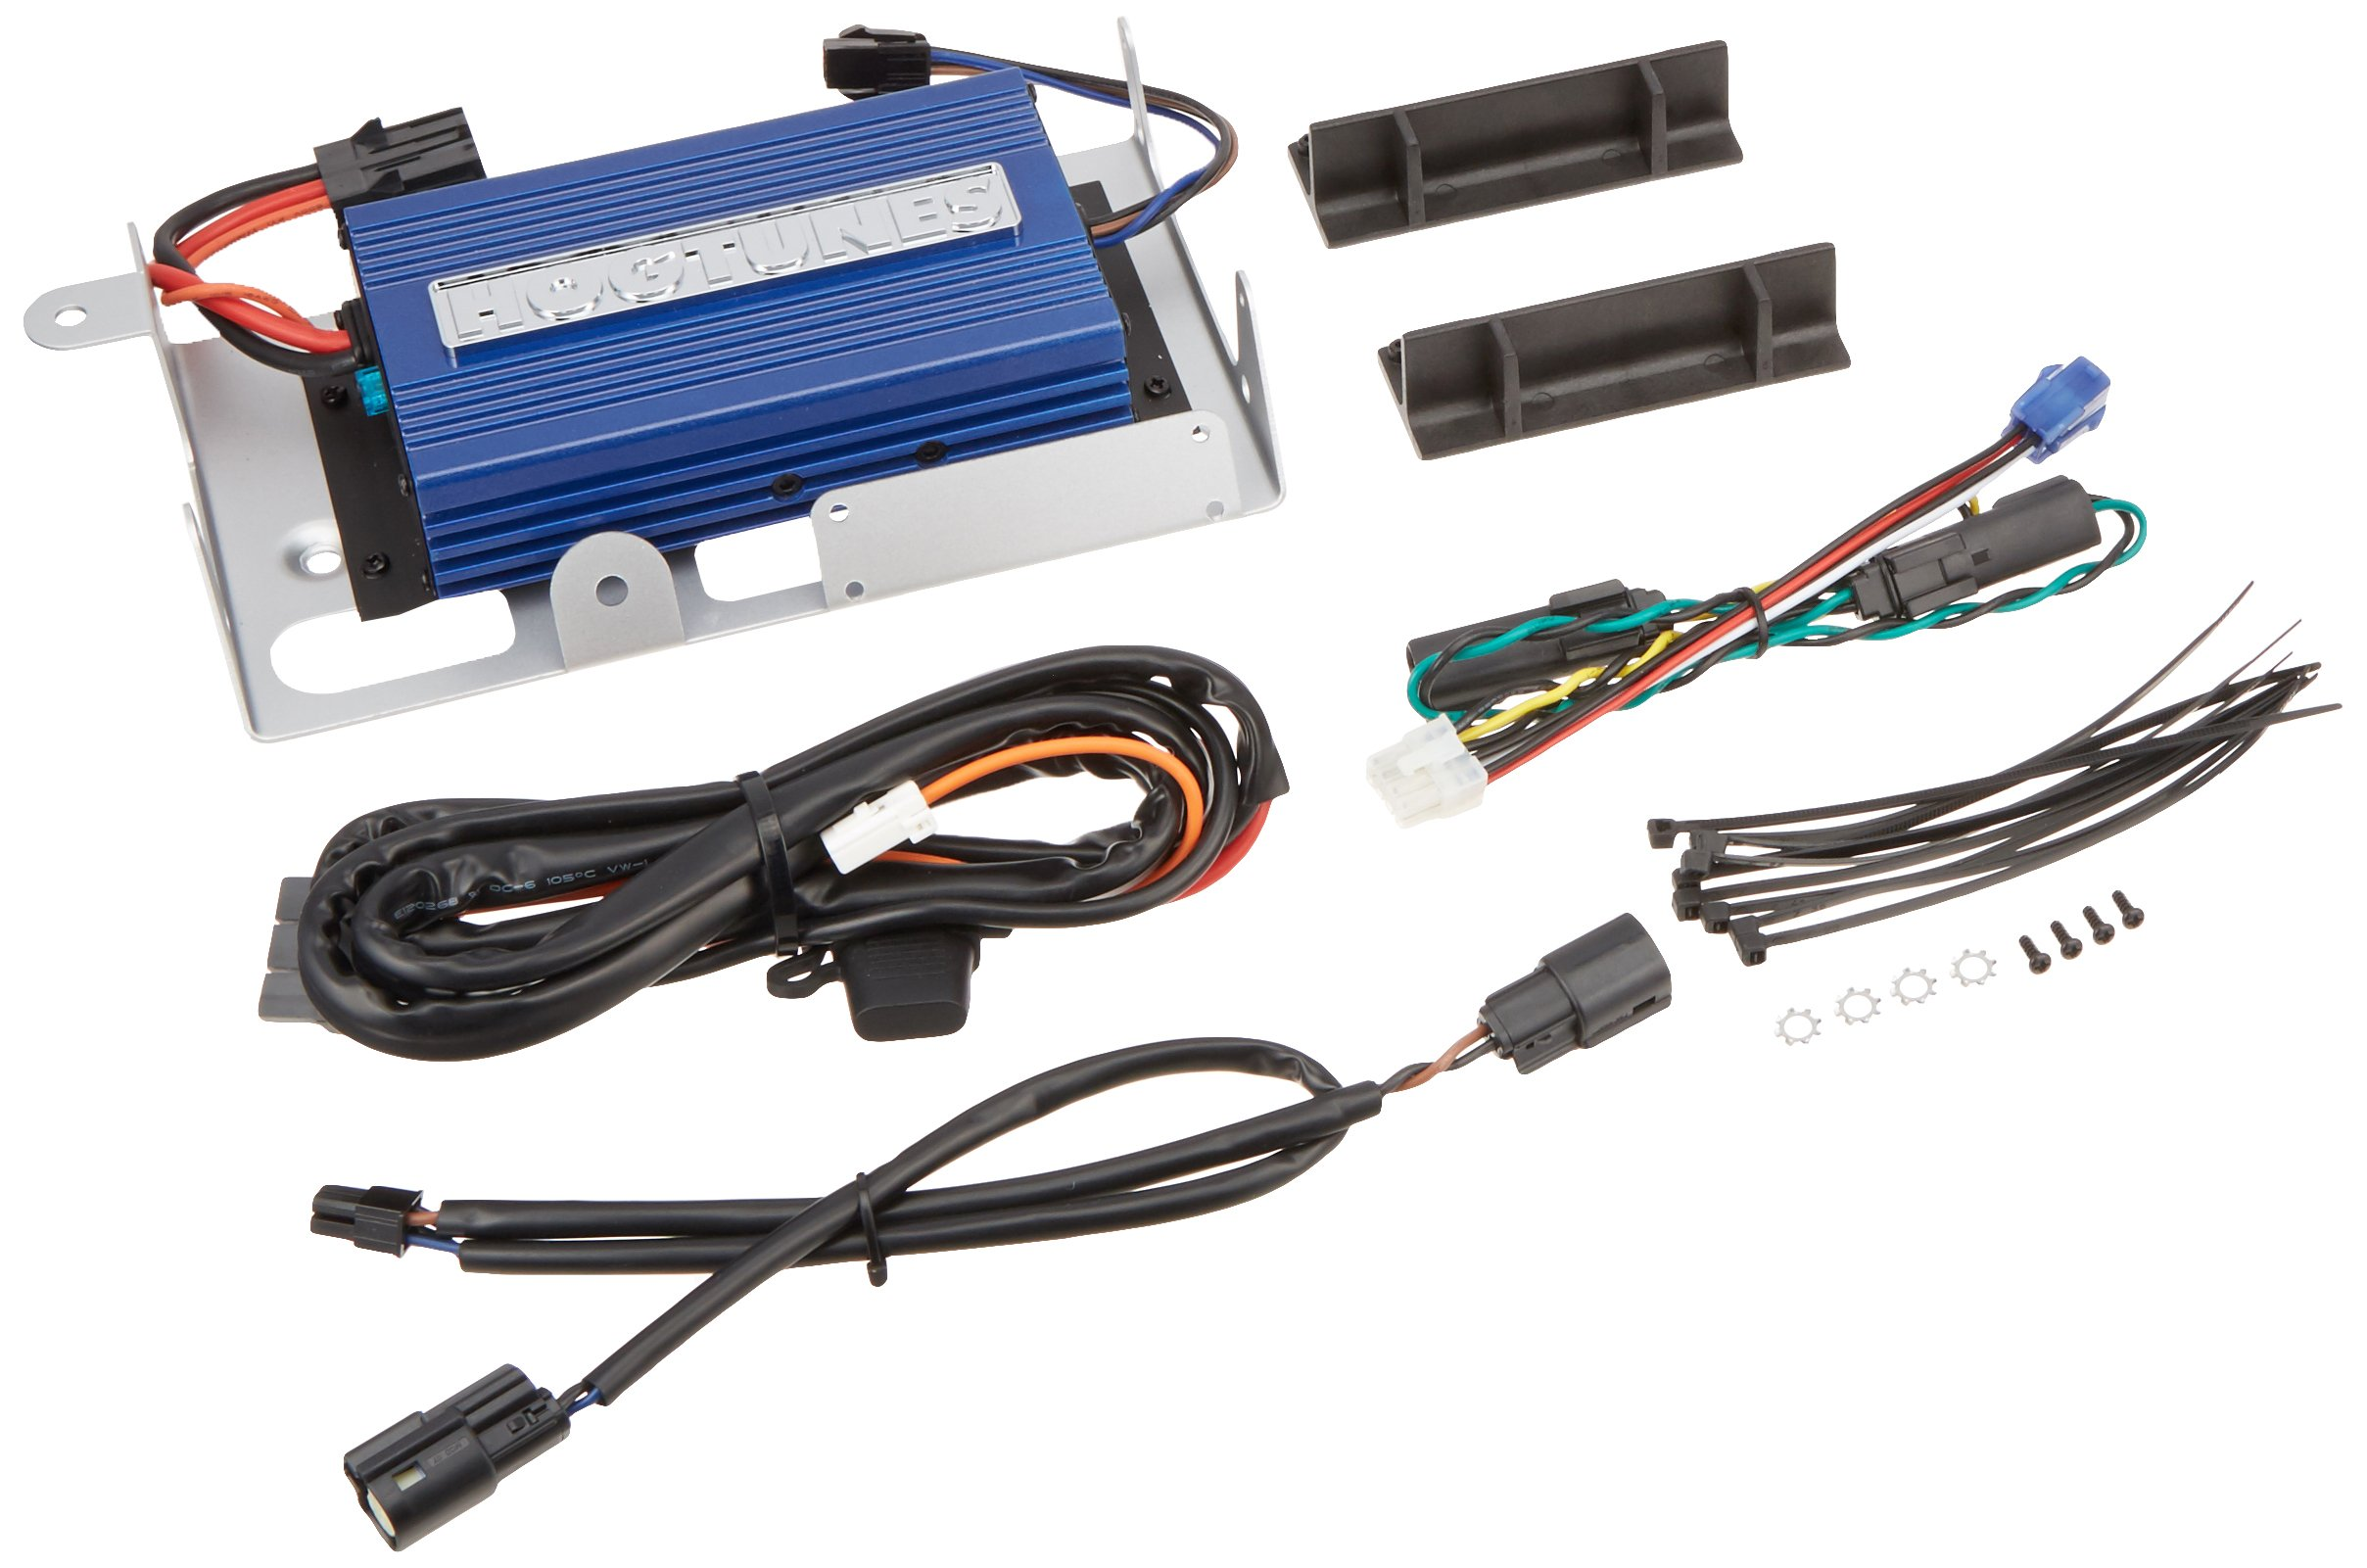 Hogtunes REV200-RM Amplifier Kit (REV Series 200 Watt Amp Kit for 2014-2016 Harley-Davidson Touring Models with Factory Radio) by Hogtunes